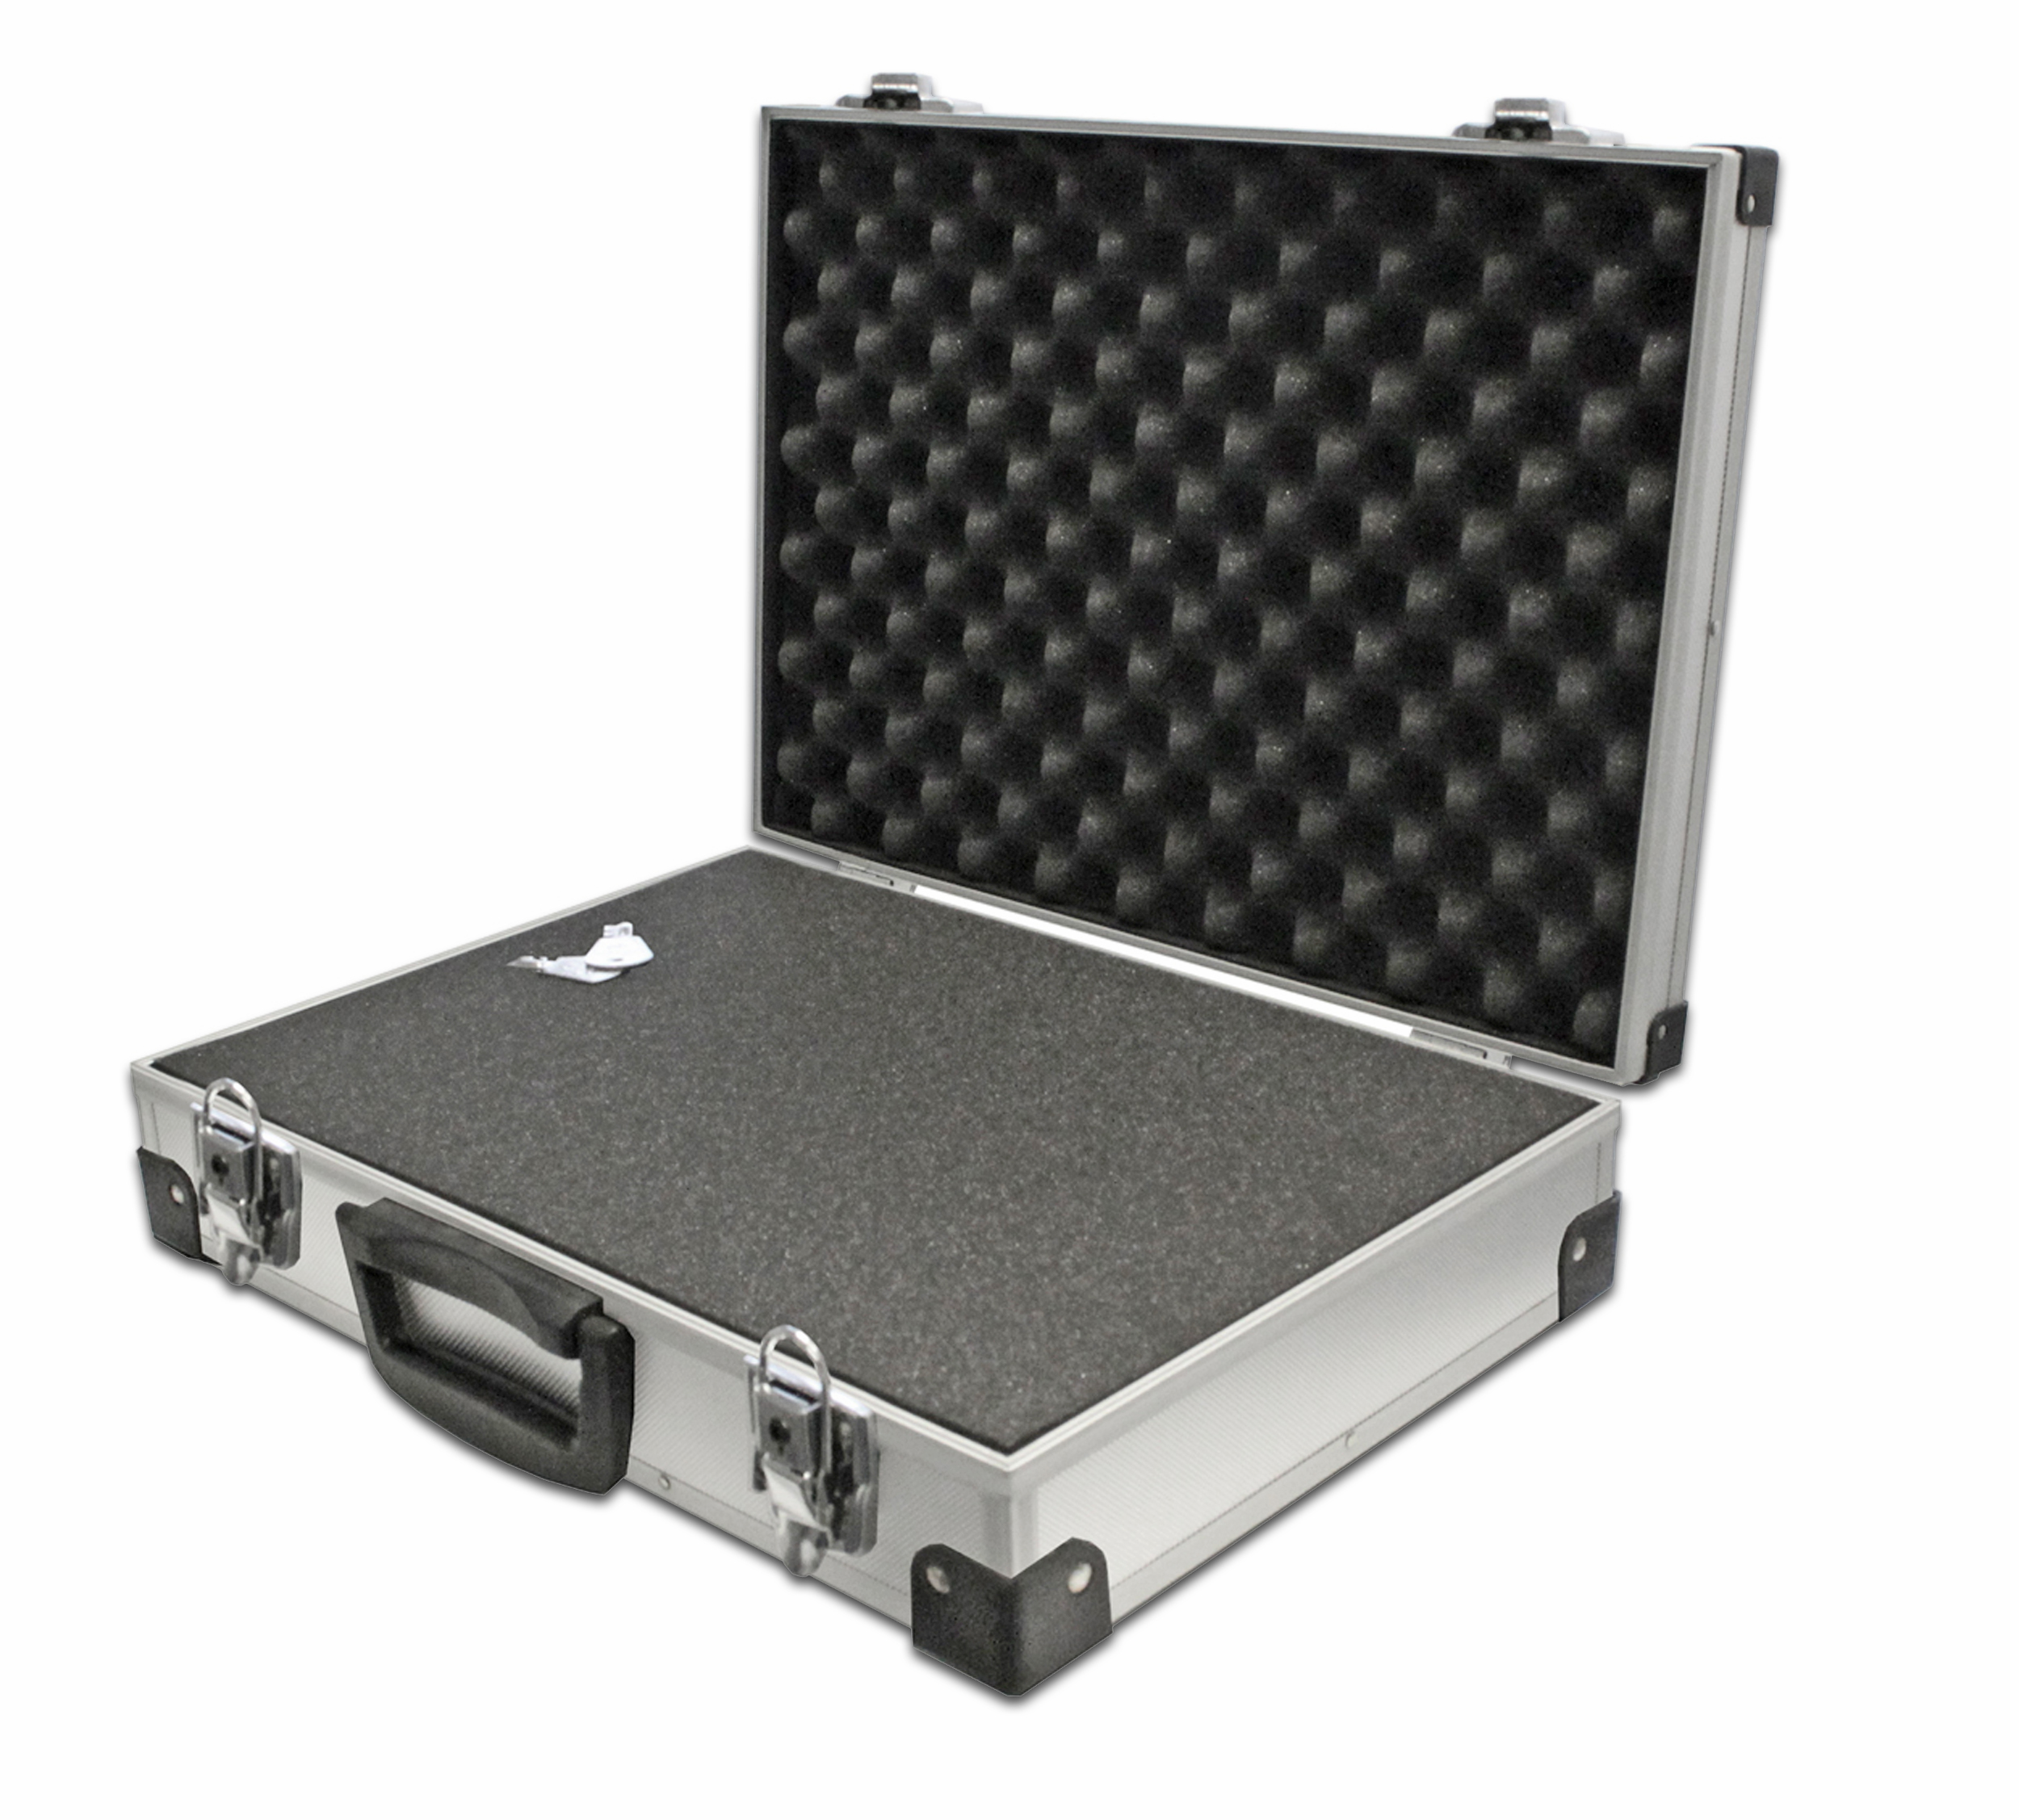 «PeakTech® P 7260» Carrying Case for Measurement Instruments